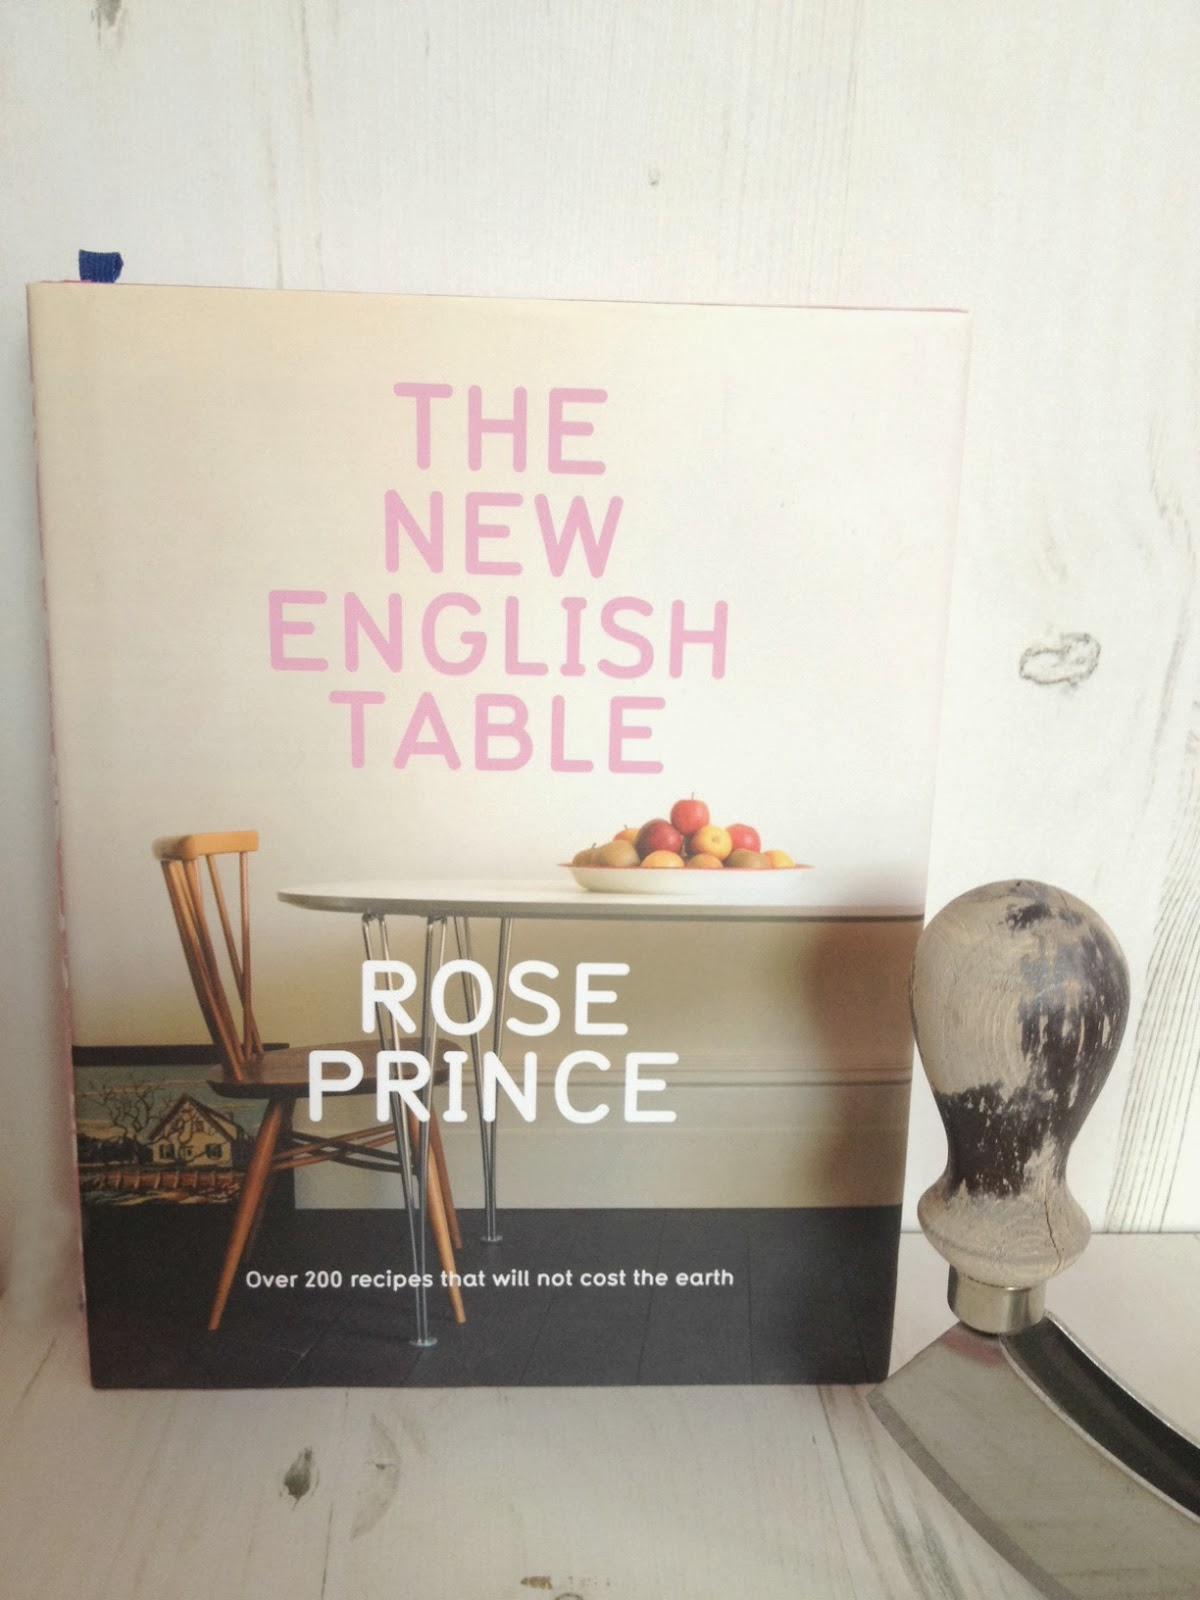 The New English Table Cook Book by Rose Prince